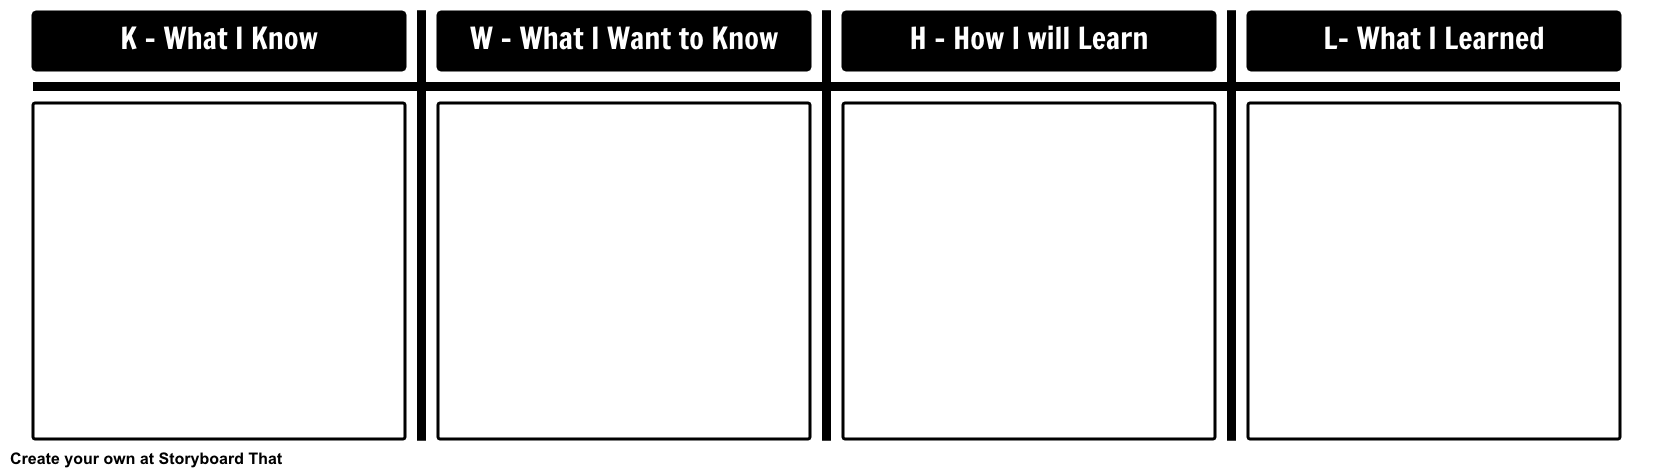 picture about Printable Kwl Chart named KWL Chart Template Impression Organizer Templates KWHL Chart